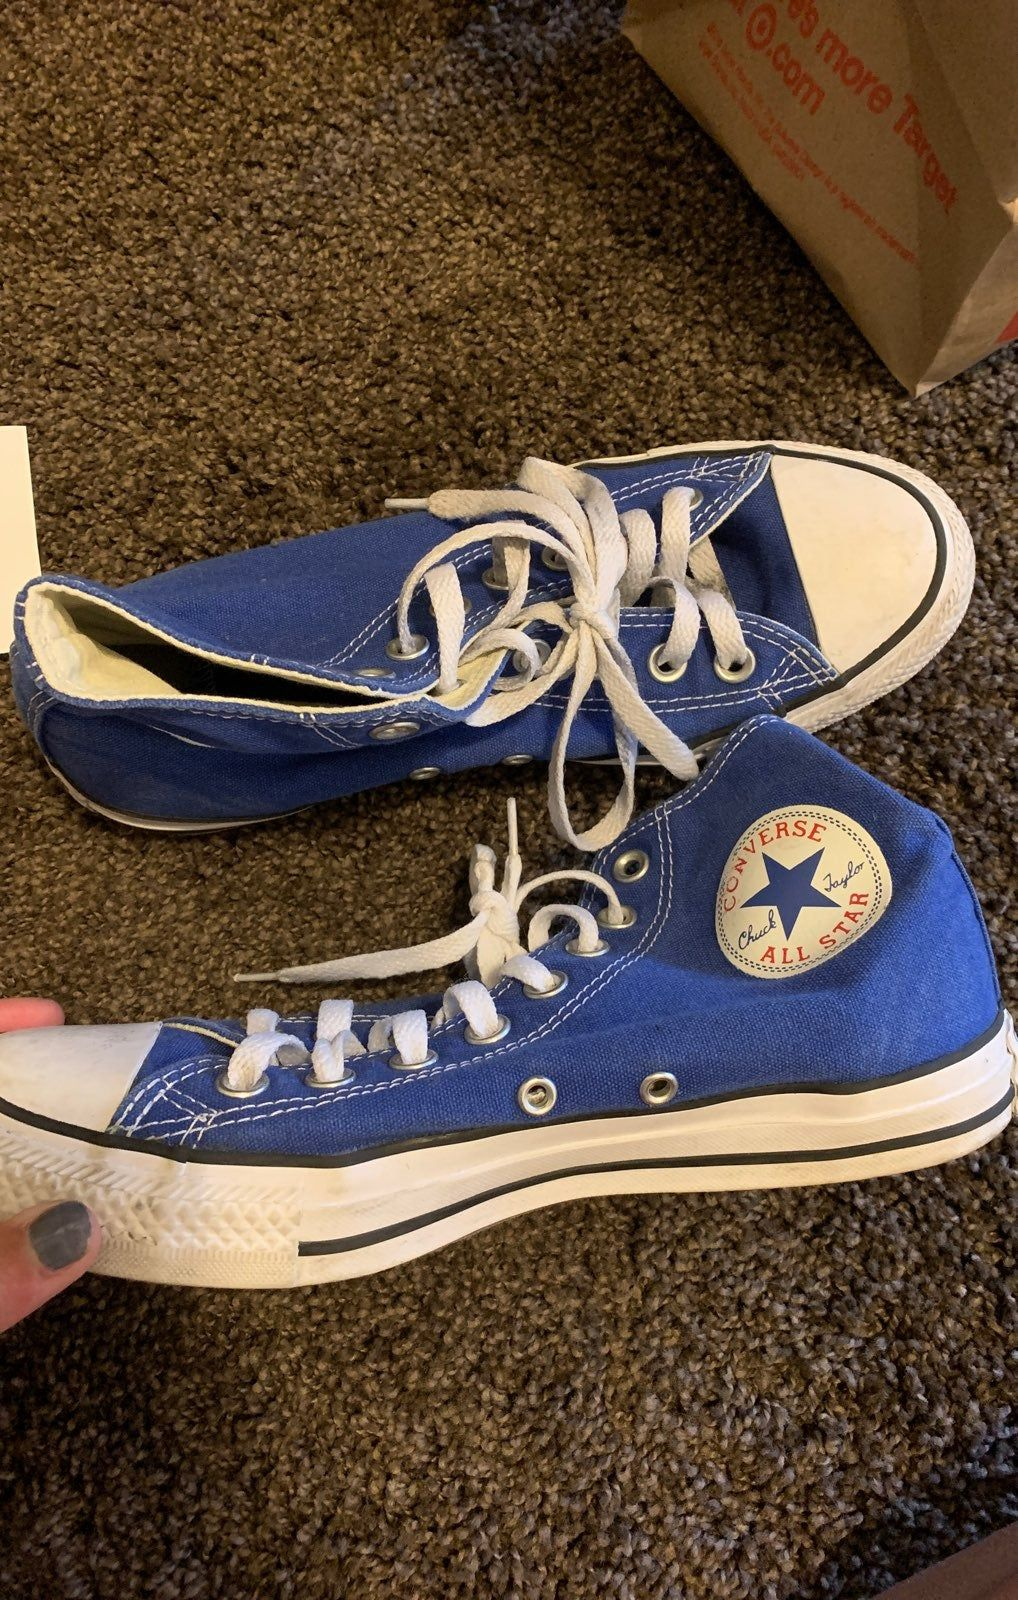 brand new converse, we wore these for